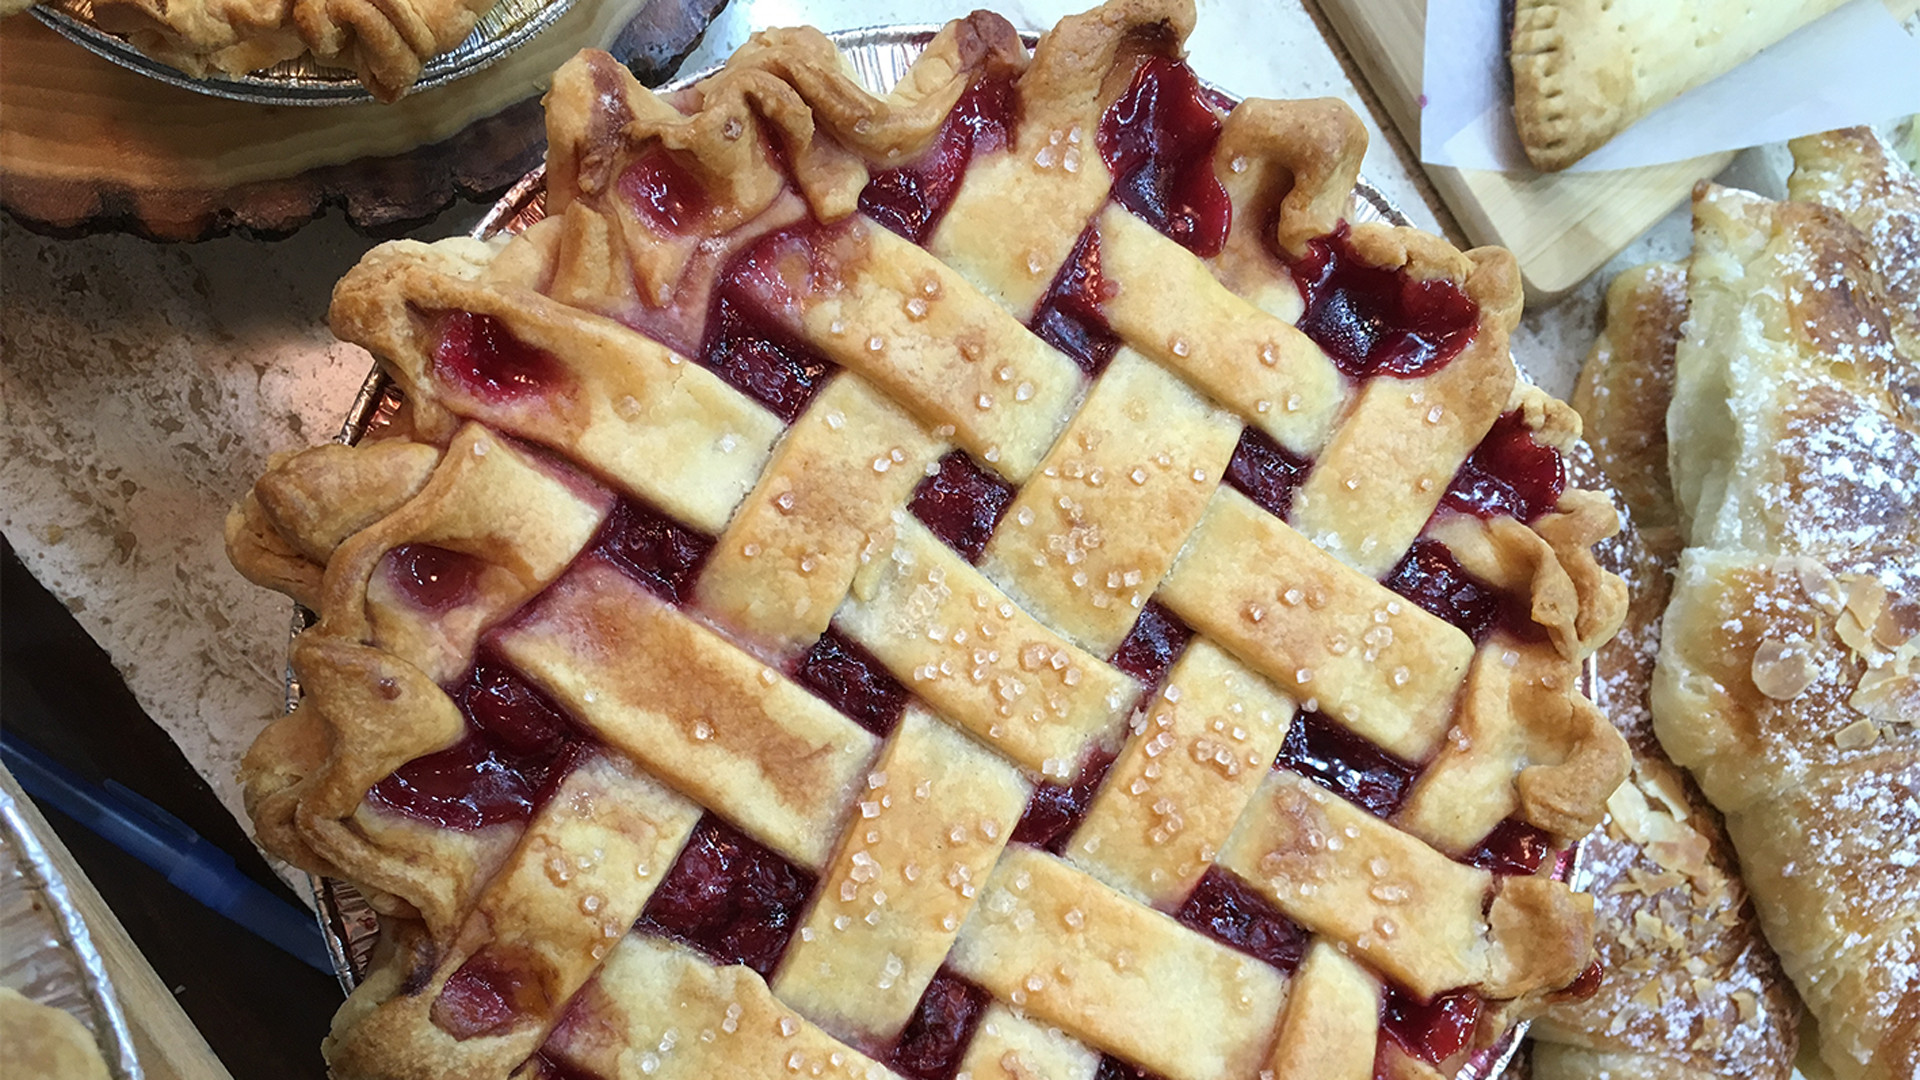 sour cheery pie from Mabel's | Lattice fruit pie from Dough Bakeshop